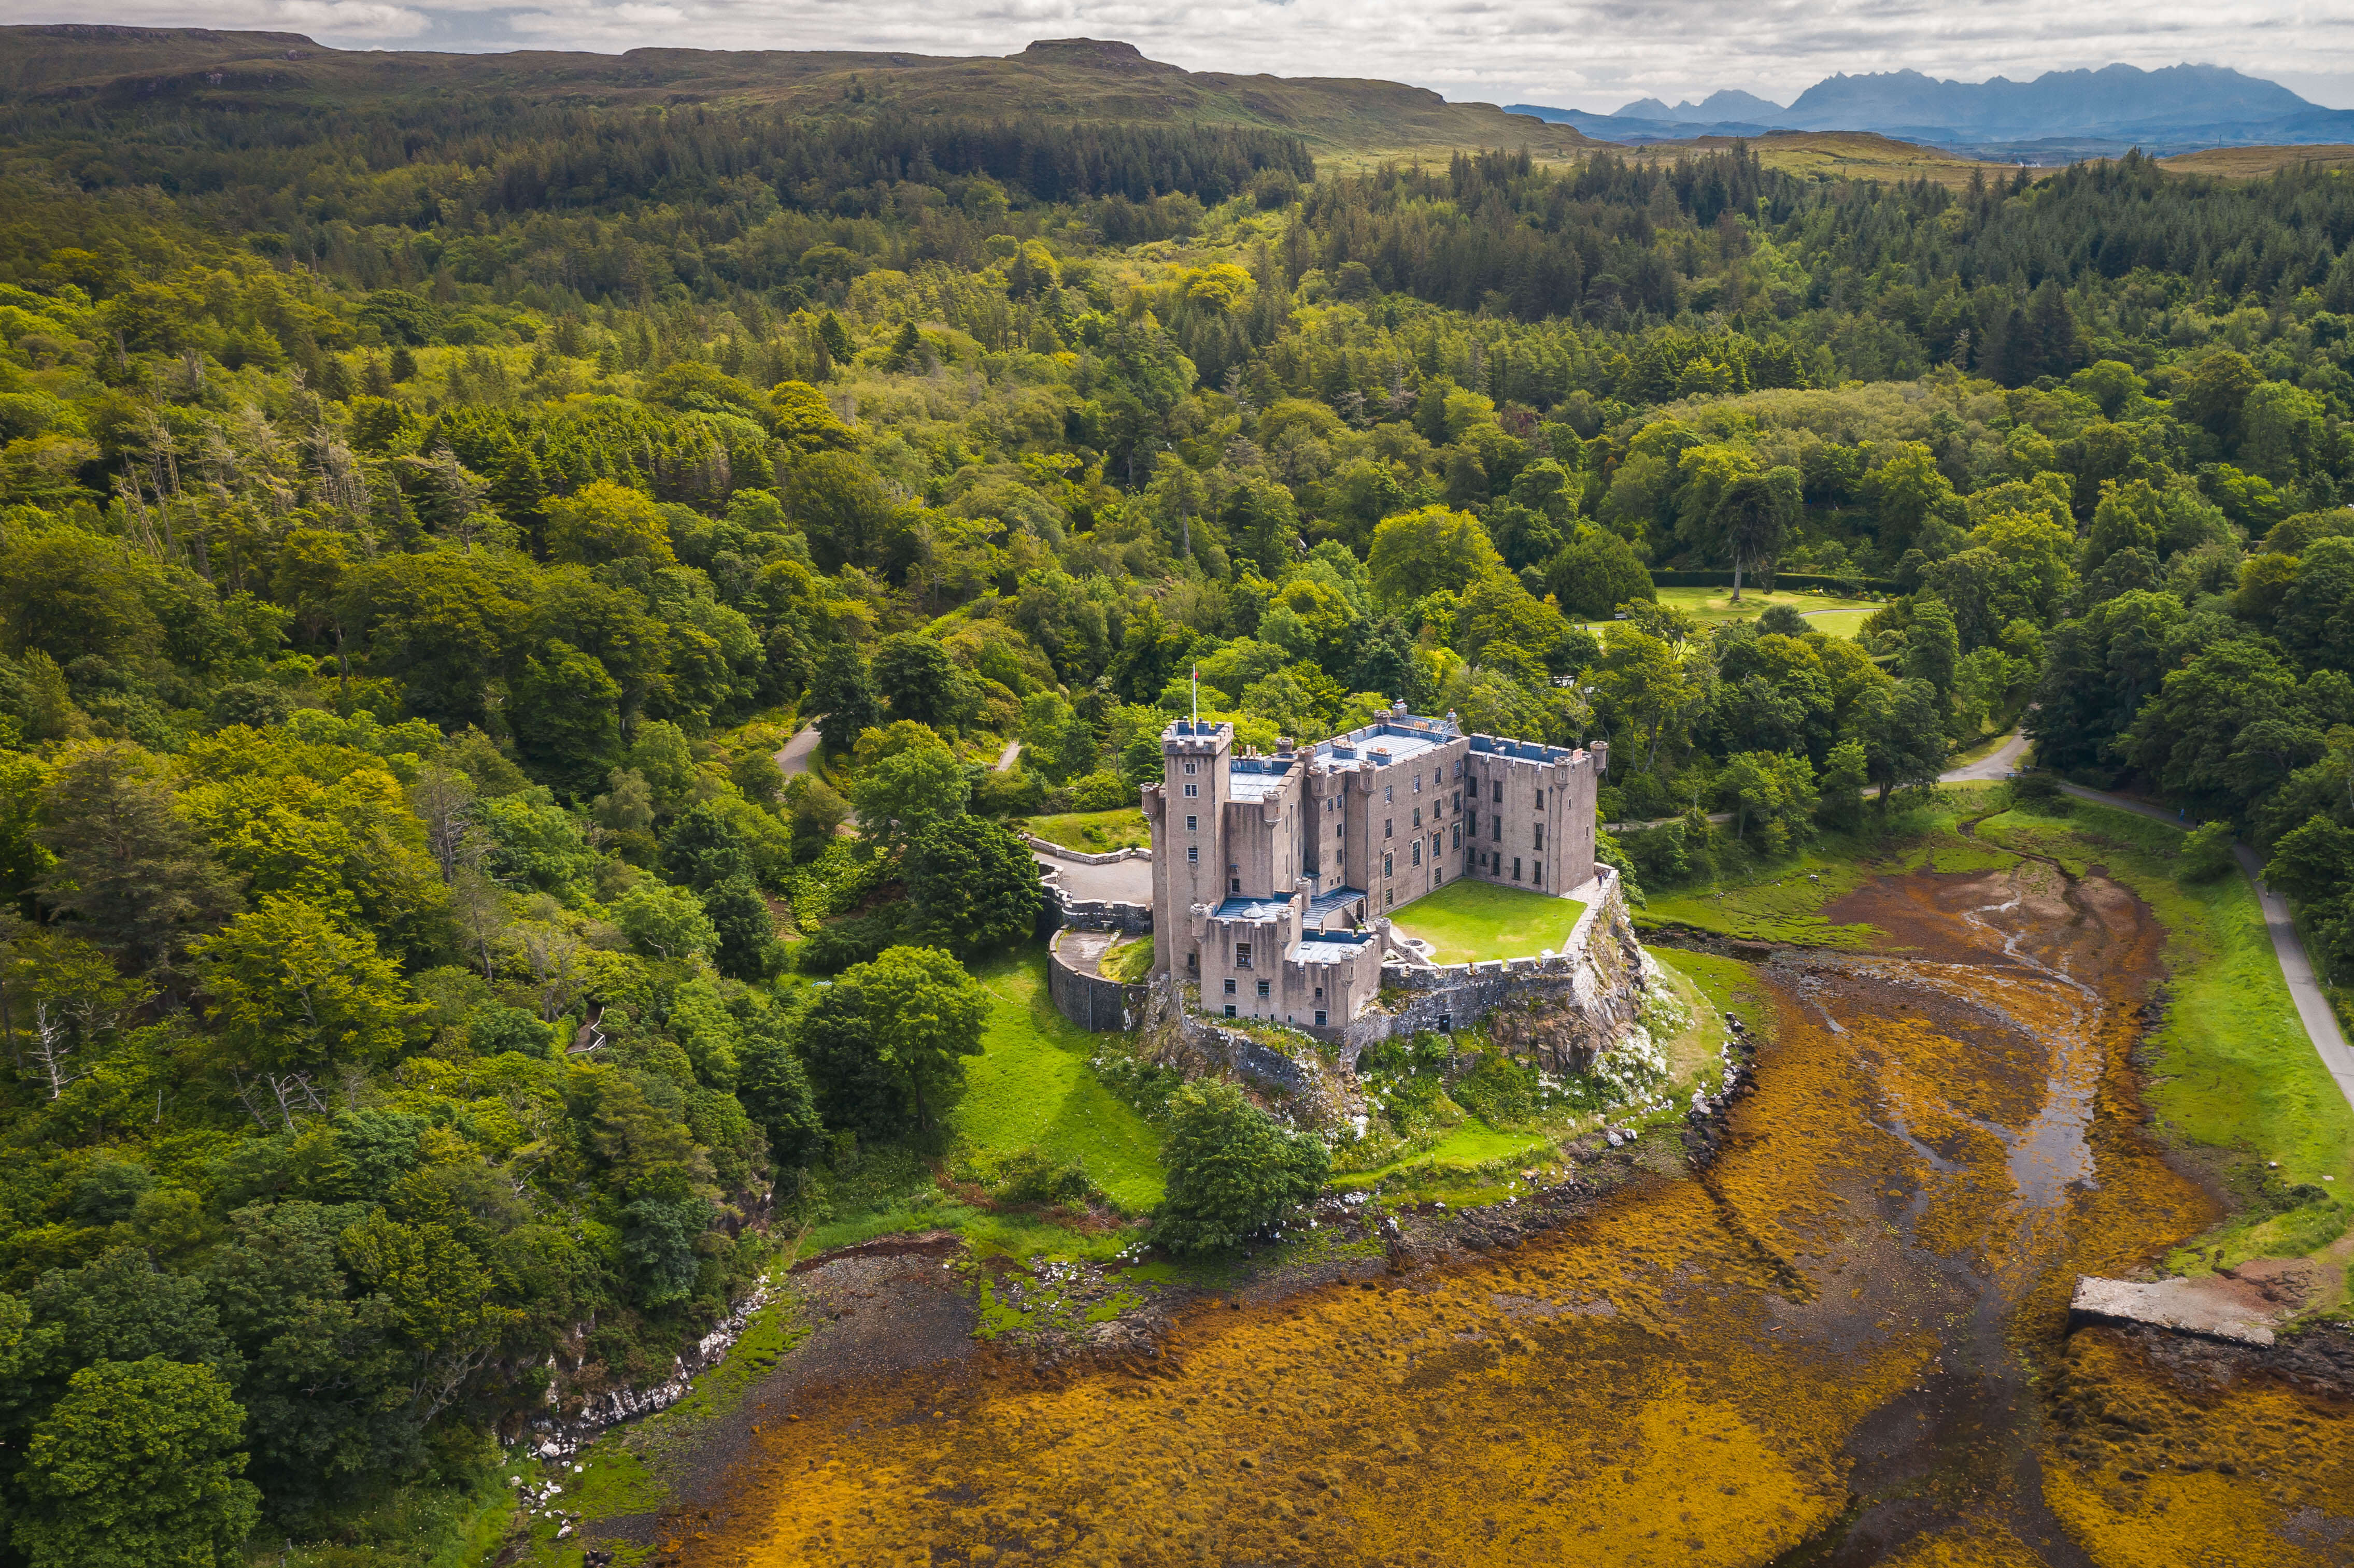 Dunvegan Castle is located 1 mile to the north of Dunvegan on the Isle of Skye.